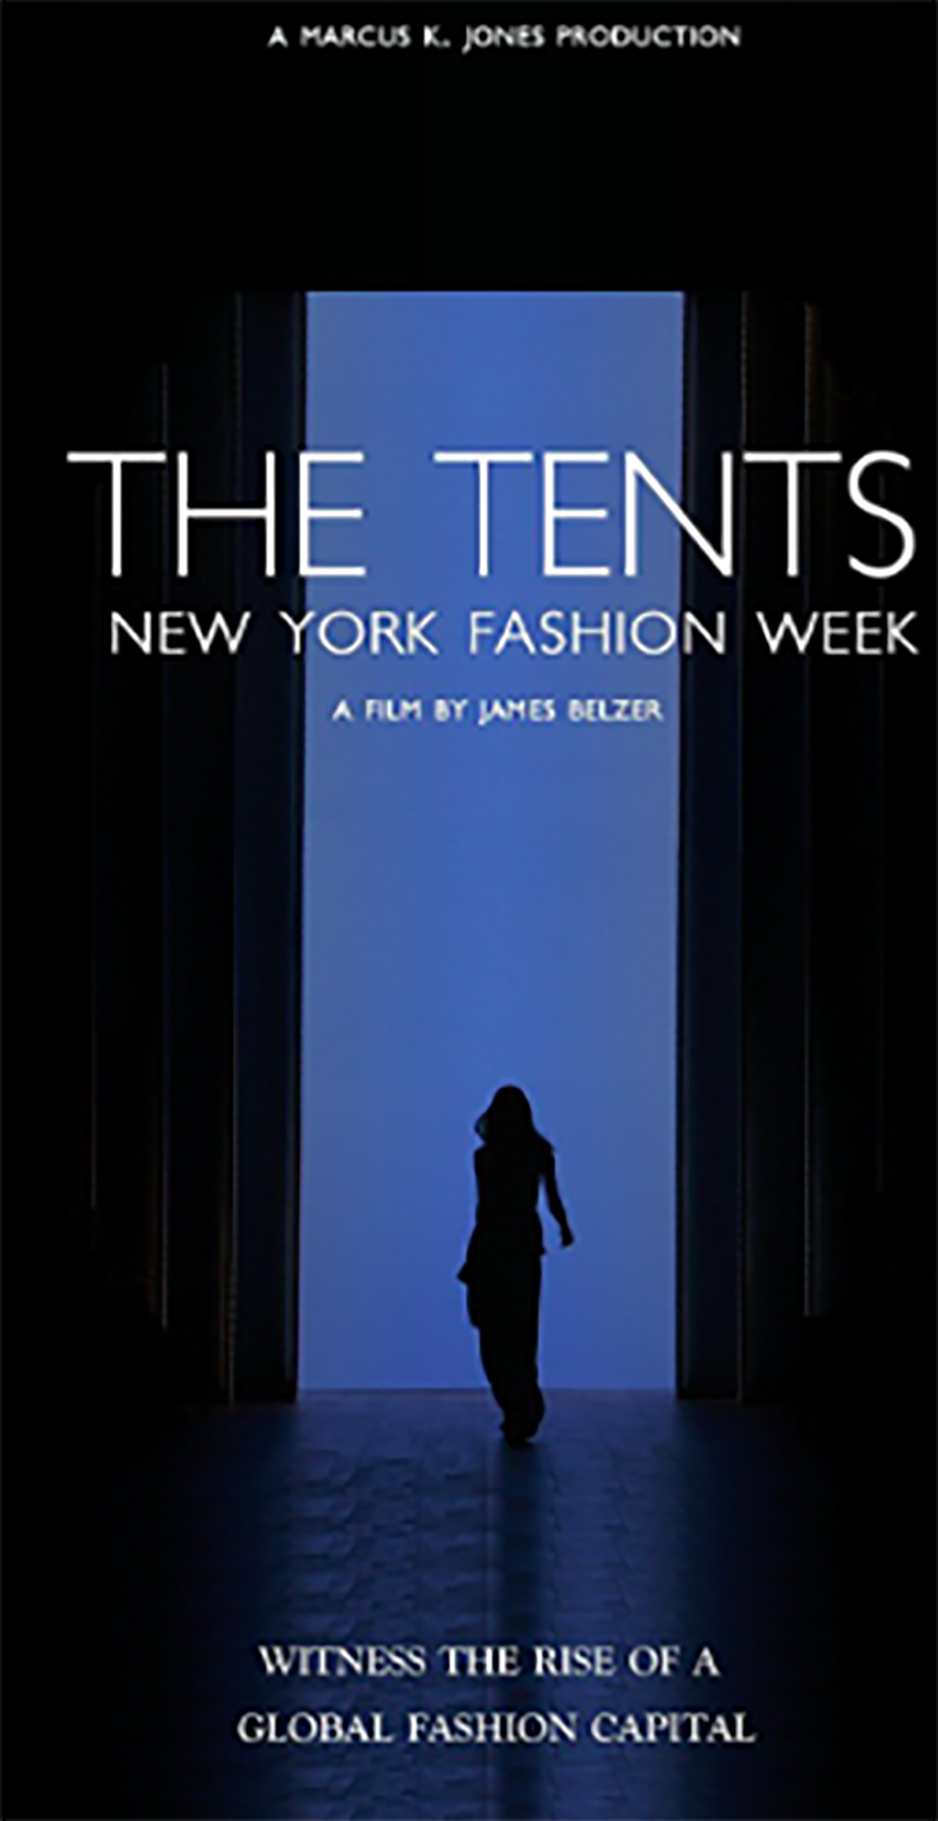 - The Tents (2012)First ever look behind-the-scenes at NY Fashion Week, with the history of how it all began in the early 1990's. Top 'Fashion Insiders' and the Top Fashion Designers weigh in on fashion week.  Featuring models galore and the best runway fashions from over the years, this film documents the total extravaganza that NY Fashion Week has become and takes a look at Mercedes-Benz Fashion Week as it prepares to make the debut at Lincoln Center.